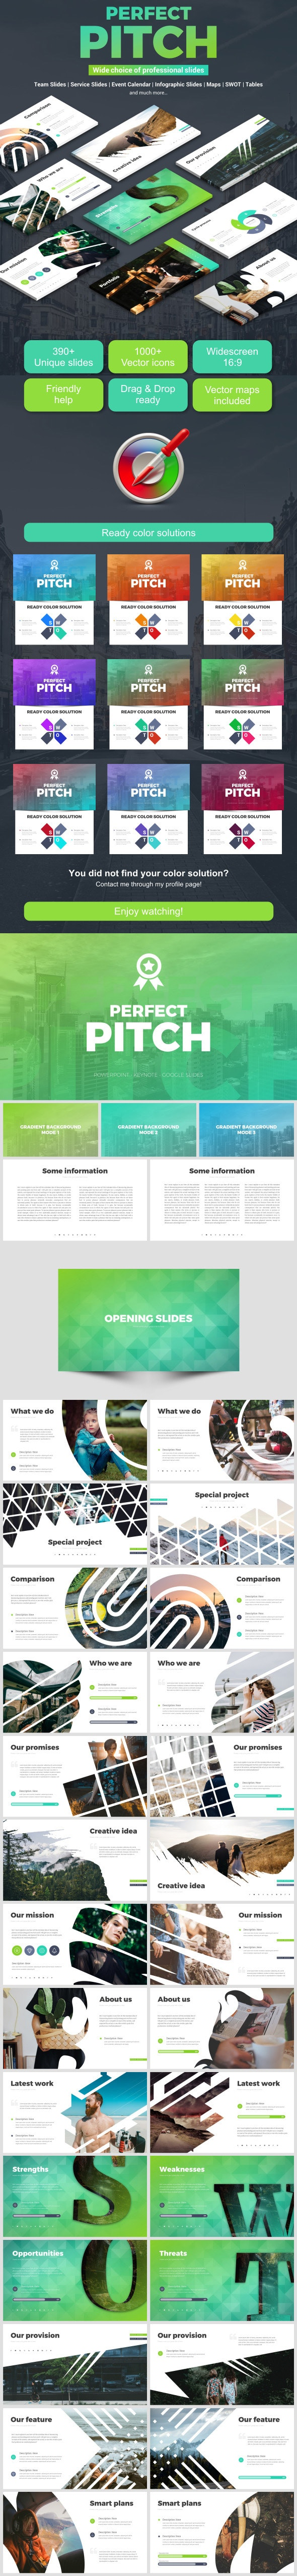 Perfect Pitch Deck - Business Keynote Templates